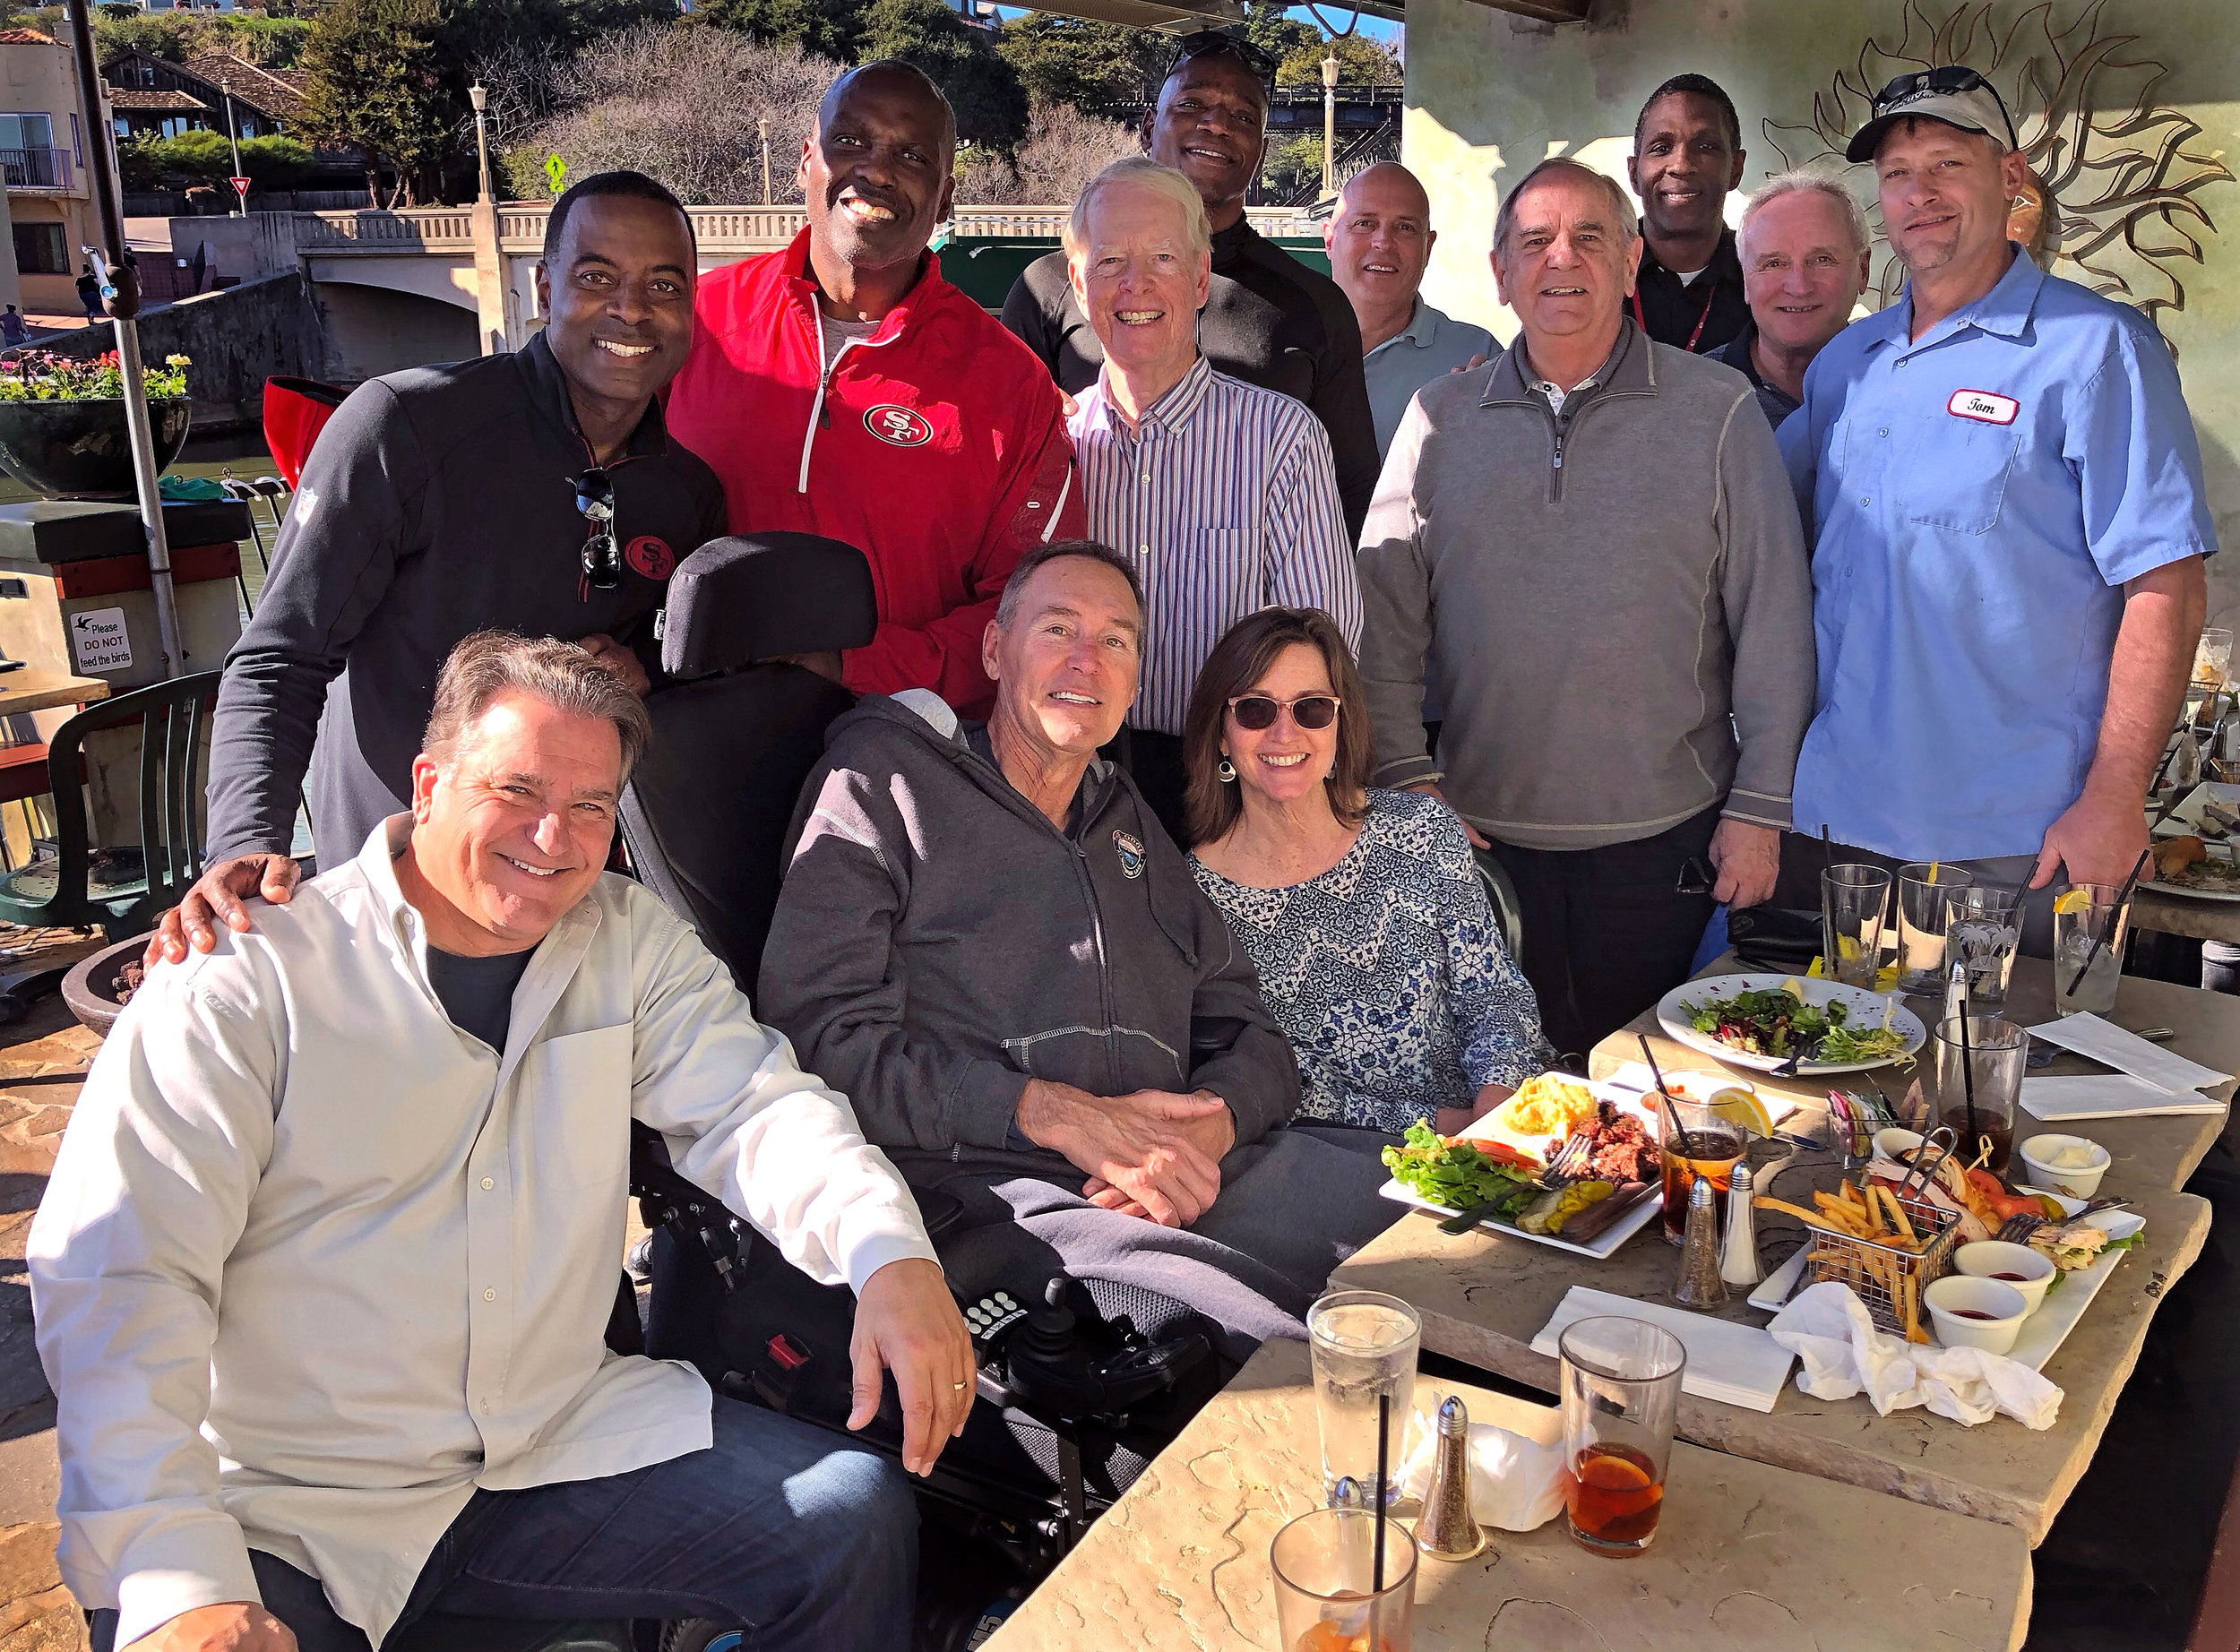 Steve Mariucci and friends have lunch with Dwight Clark at the Paradise Beach Grille in Capitola, California on February 6, 2018.